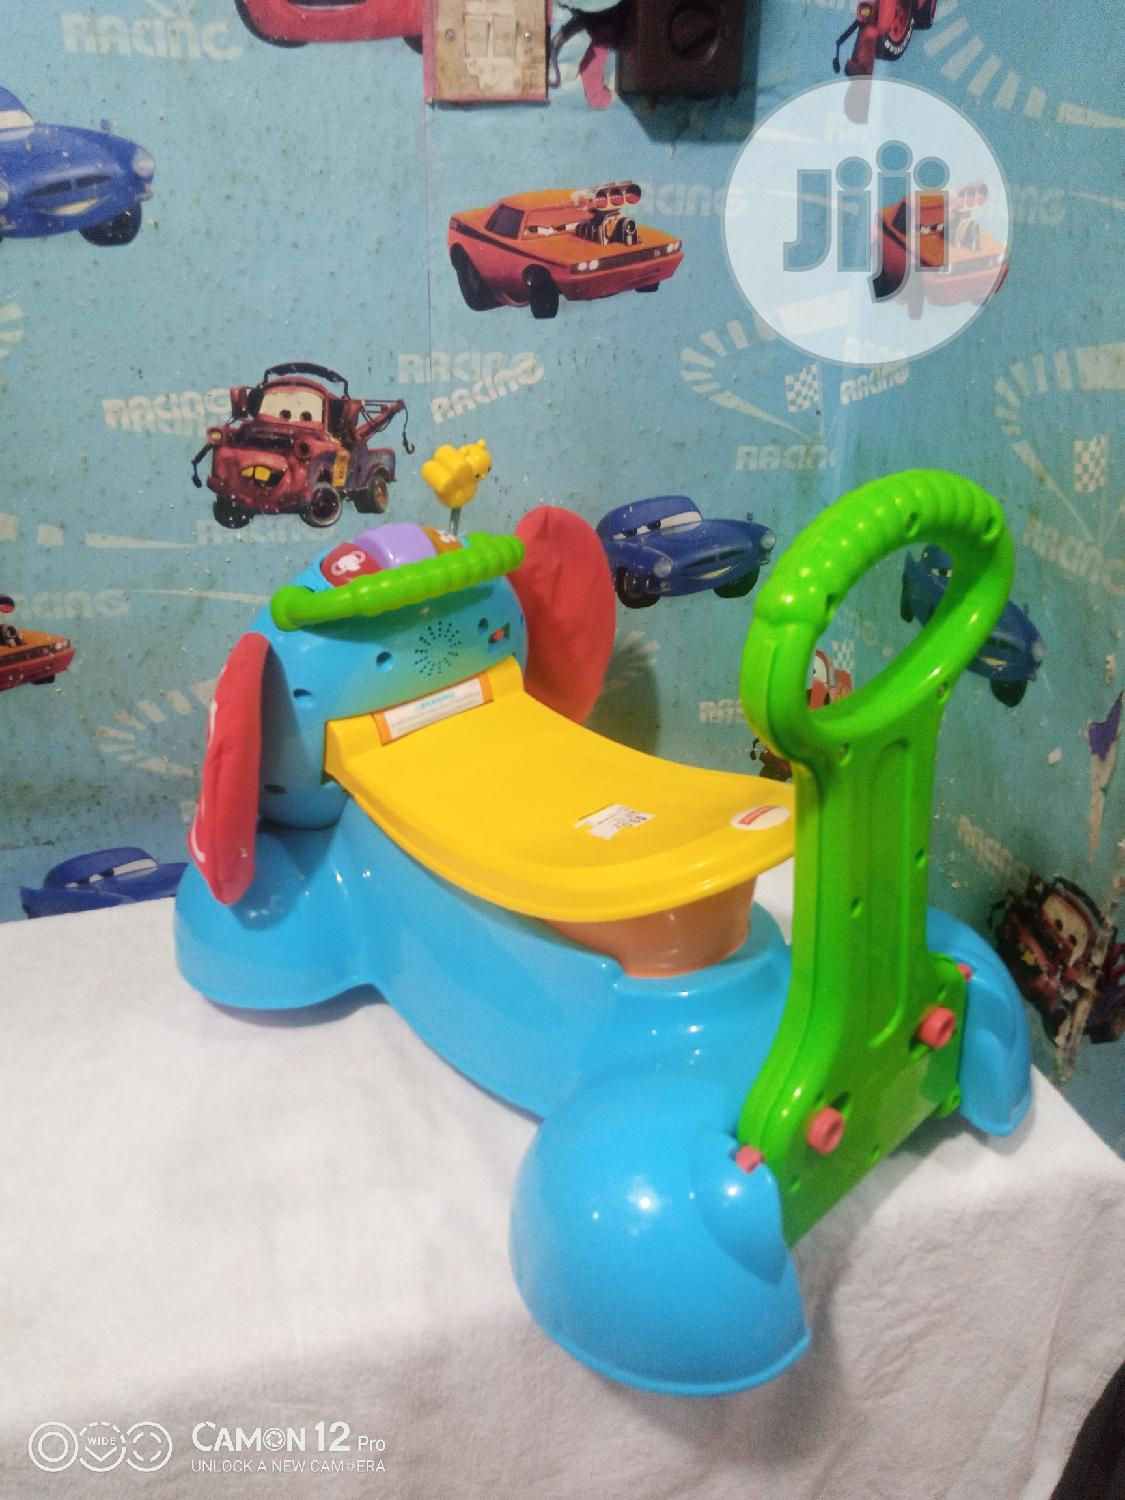 Tokunbo Uk Used 3in1 Toy Car   Toys for sale in Ikeja, Lagos State, Nigeria